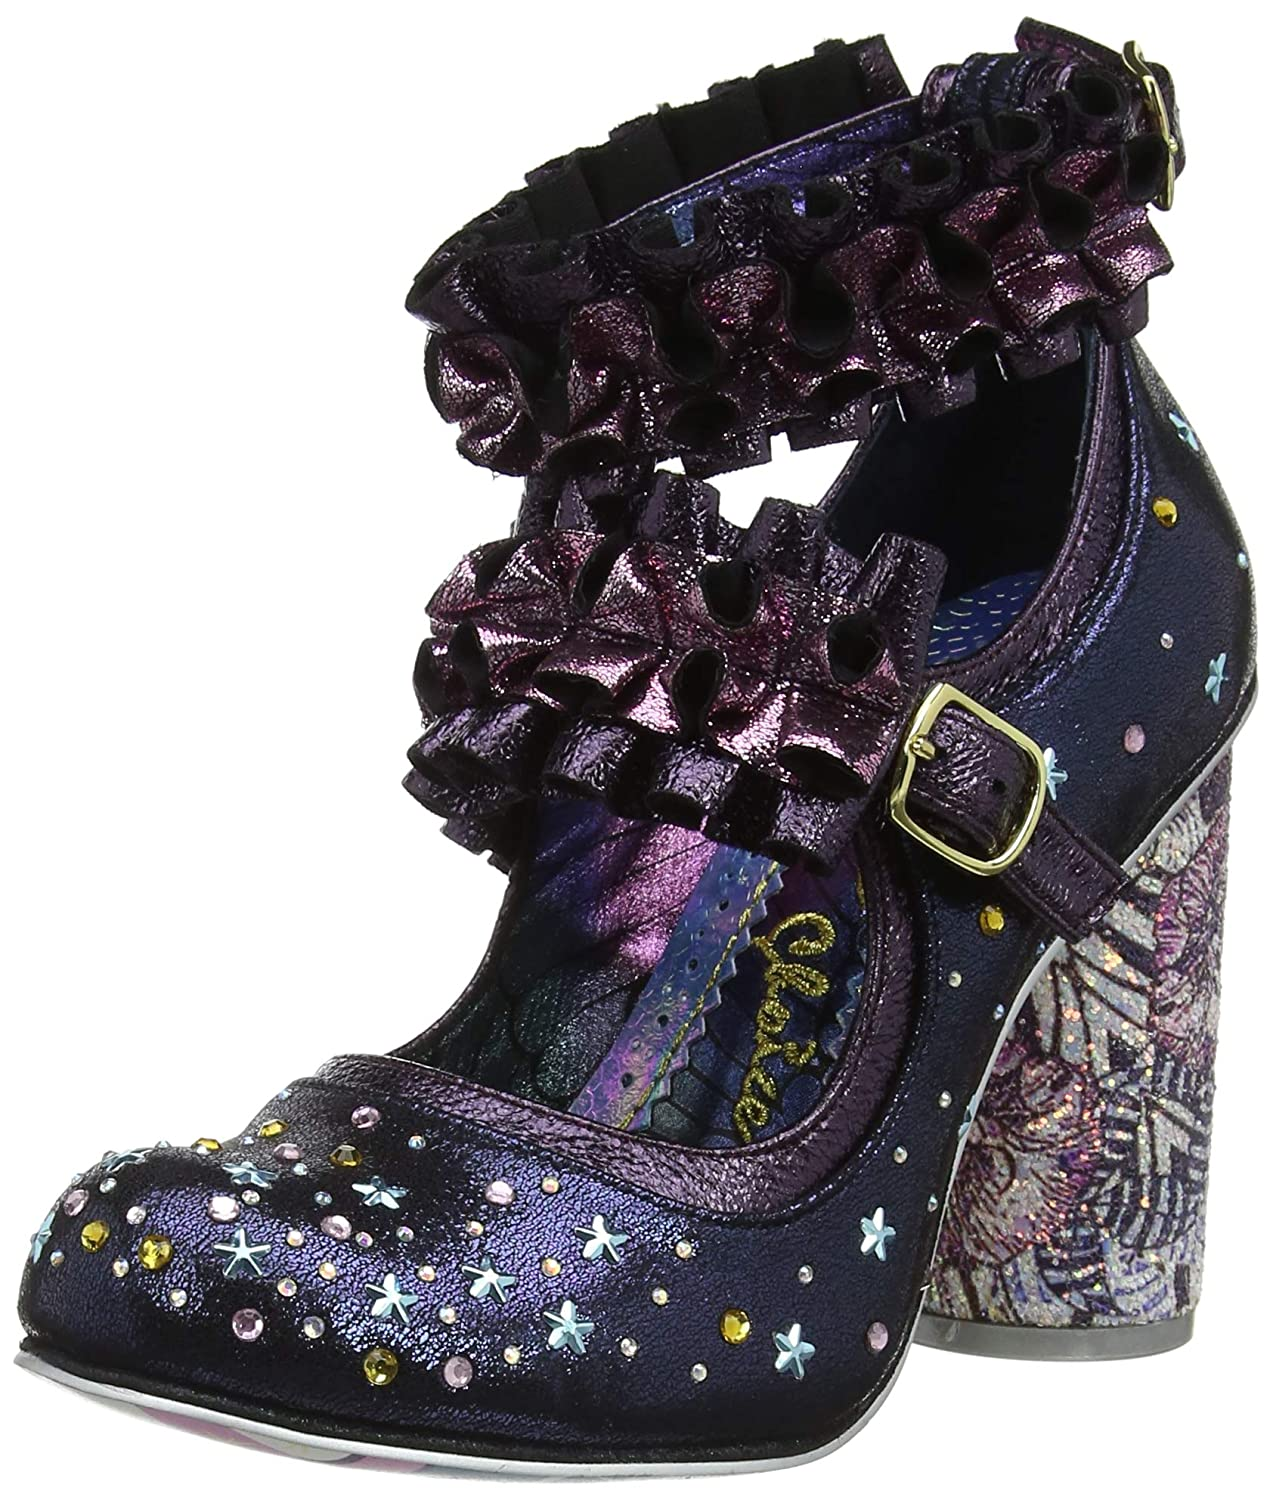 Irregular Choice New Rules, Zapatos con Tacon y Correa de Tobillo para Mujer